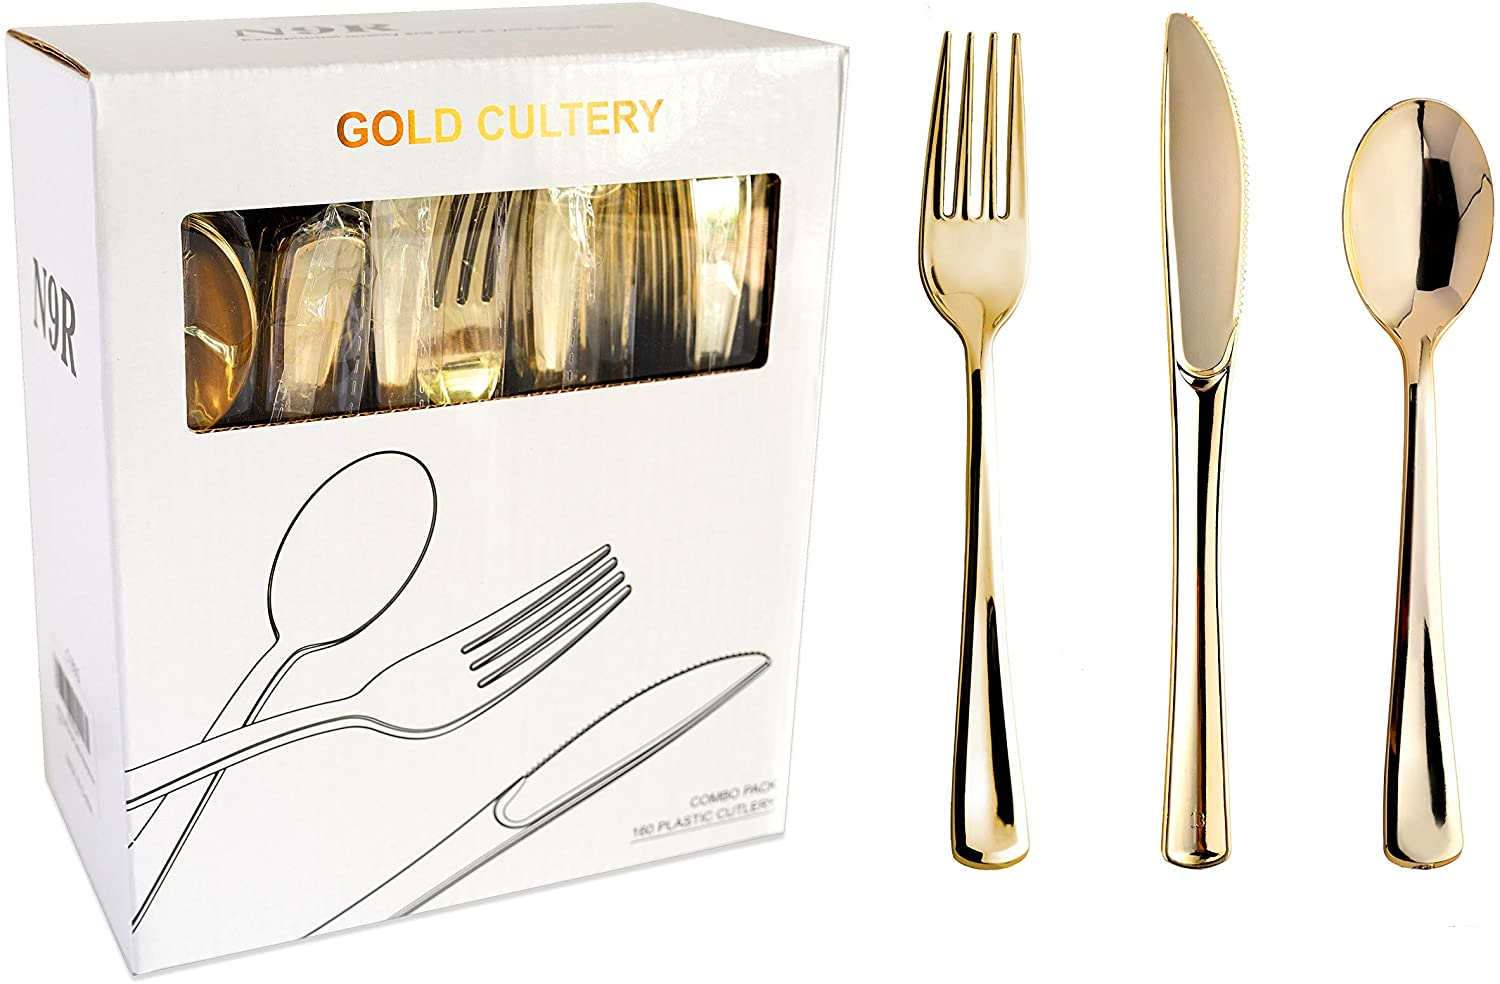 N9R 160 Gold Plastic Silverware - Gold Plastic Cutlery Set -80 Gold Forks, 40 Gold Spoons, 40 Gold Knives Disposable Gold Cutlery for Party Bulk